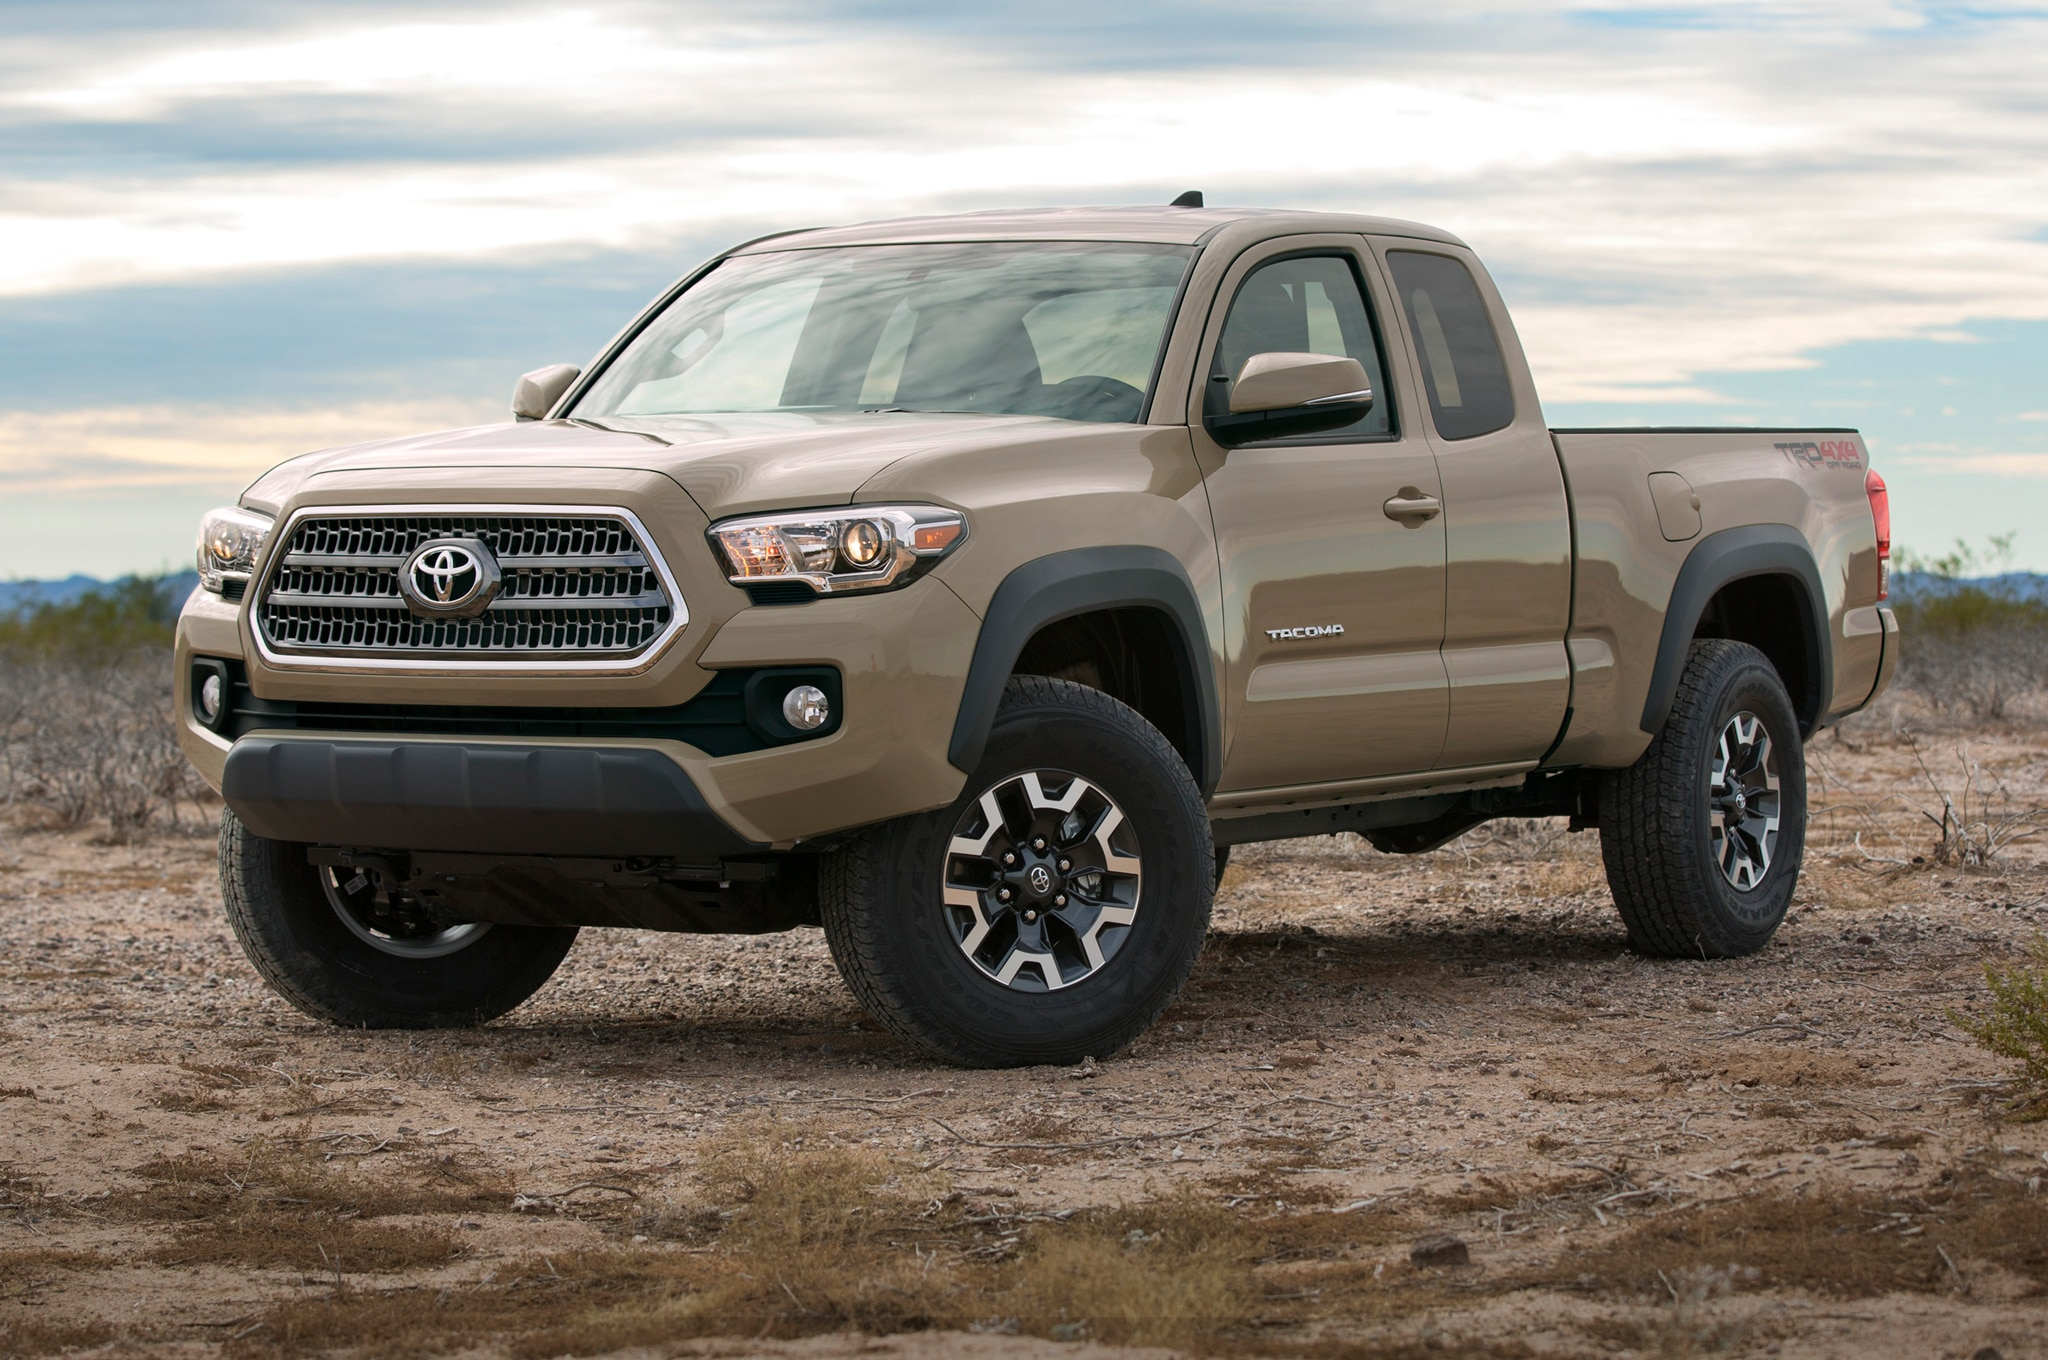 2016 toyota tacoma adds new v 6 engine six speed transmissions. Black Bedroom Furniture Sets. Home Design Ideas